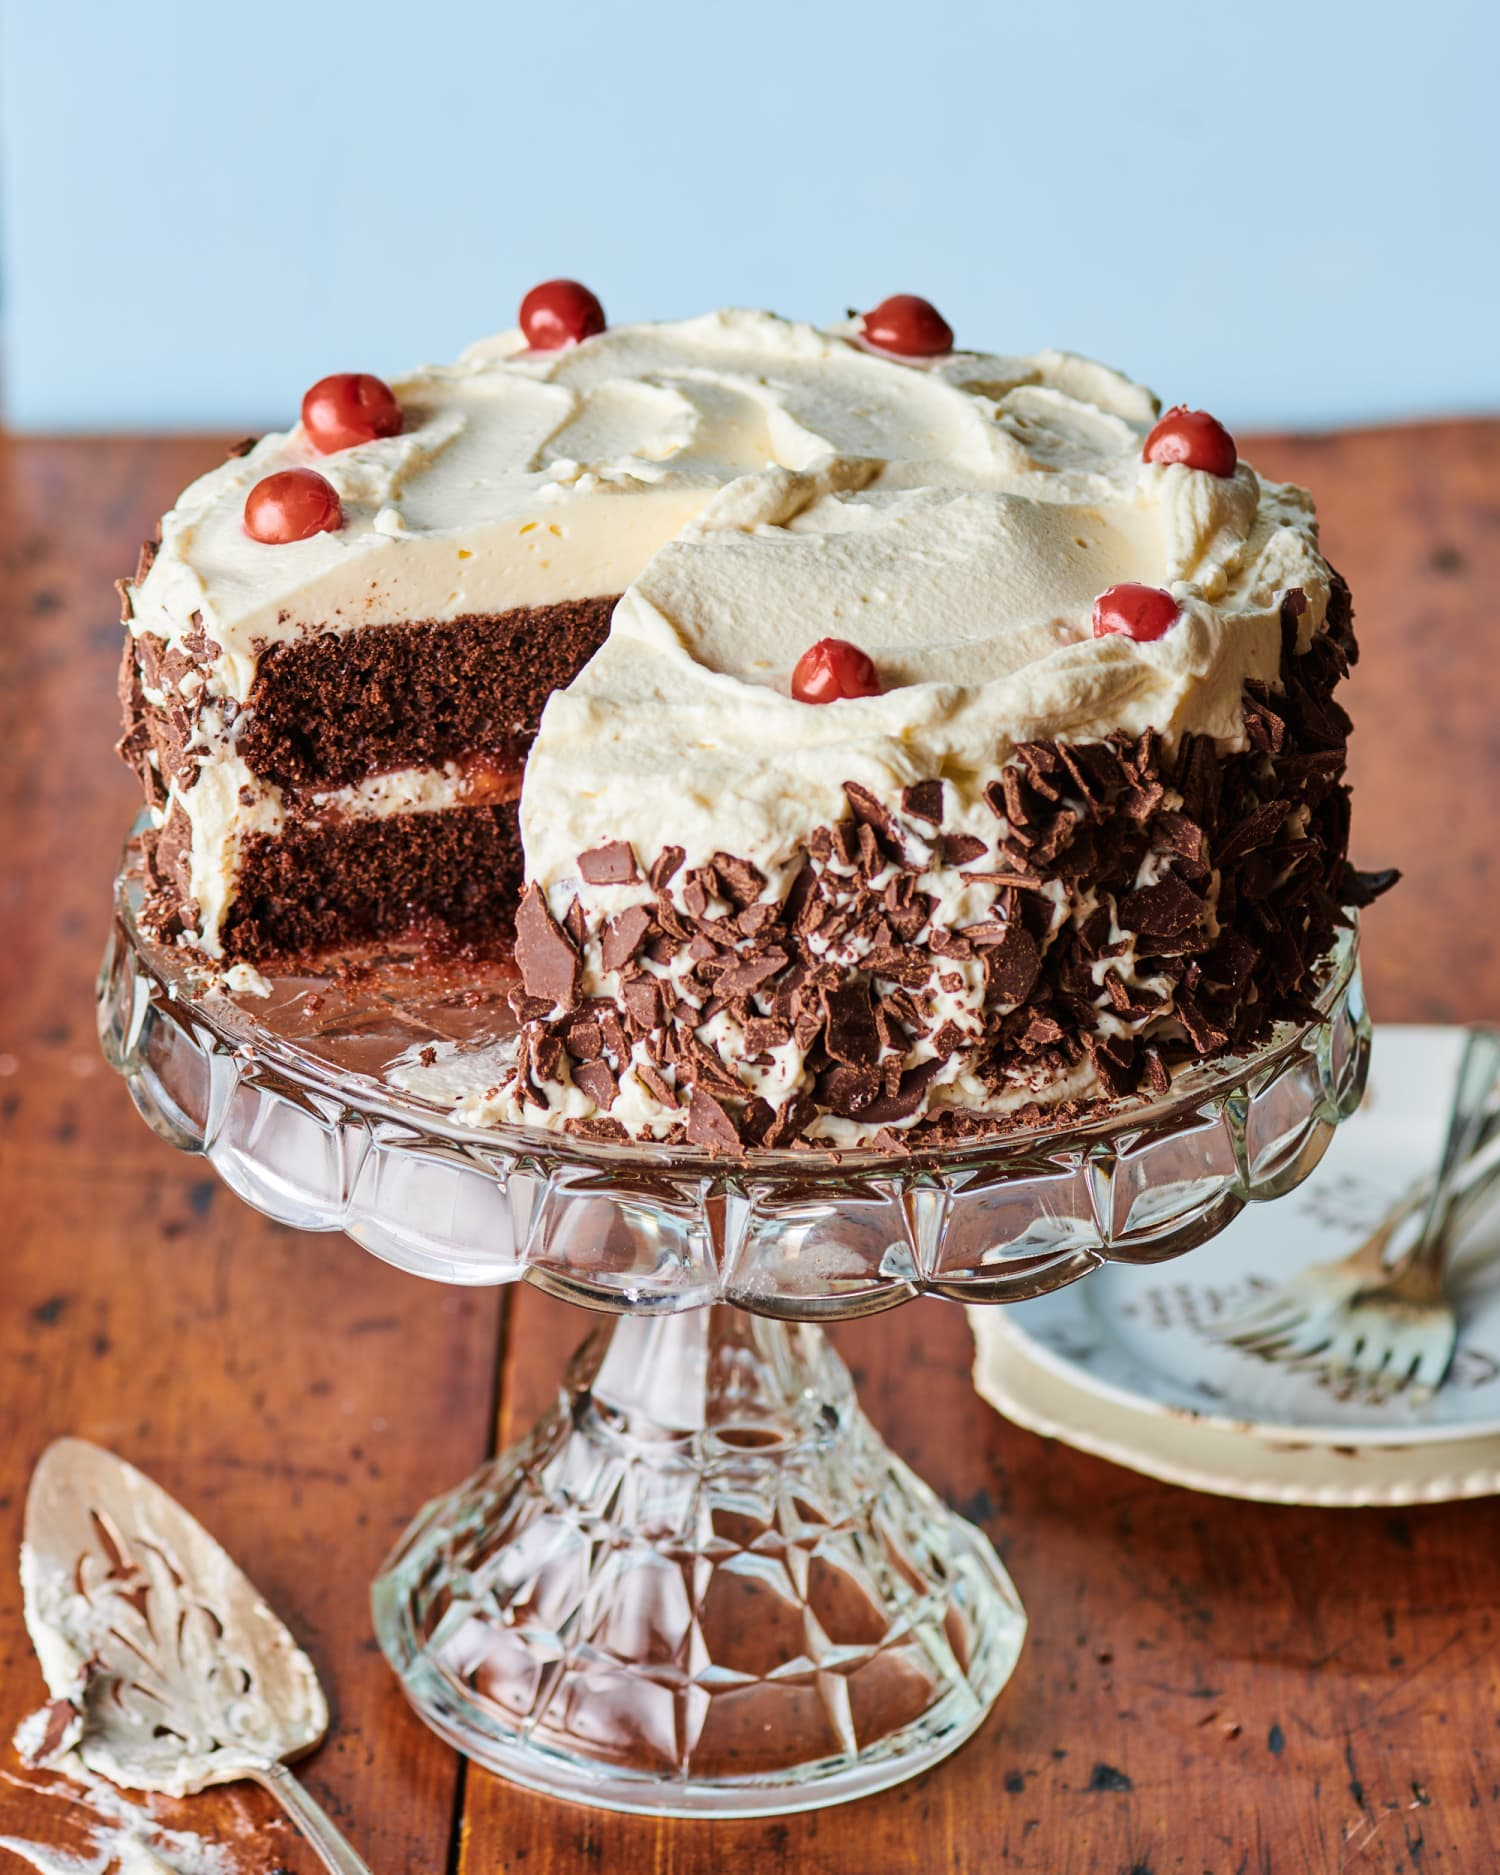 How to Make an Intensely Chocolatey Black Forest Cake at Home